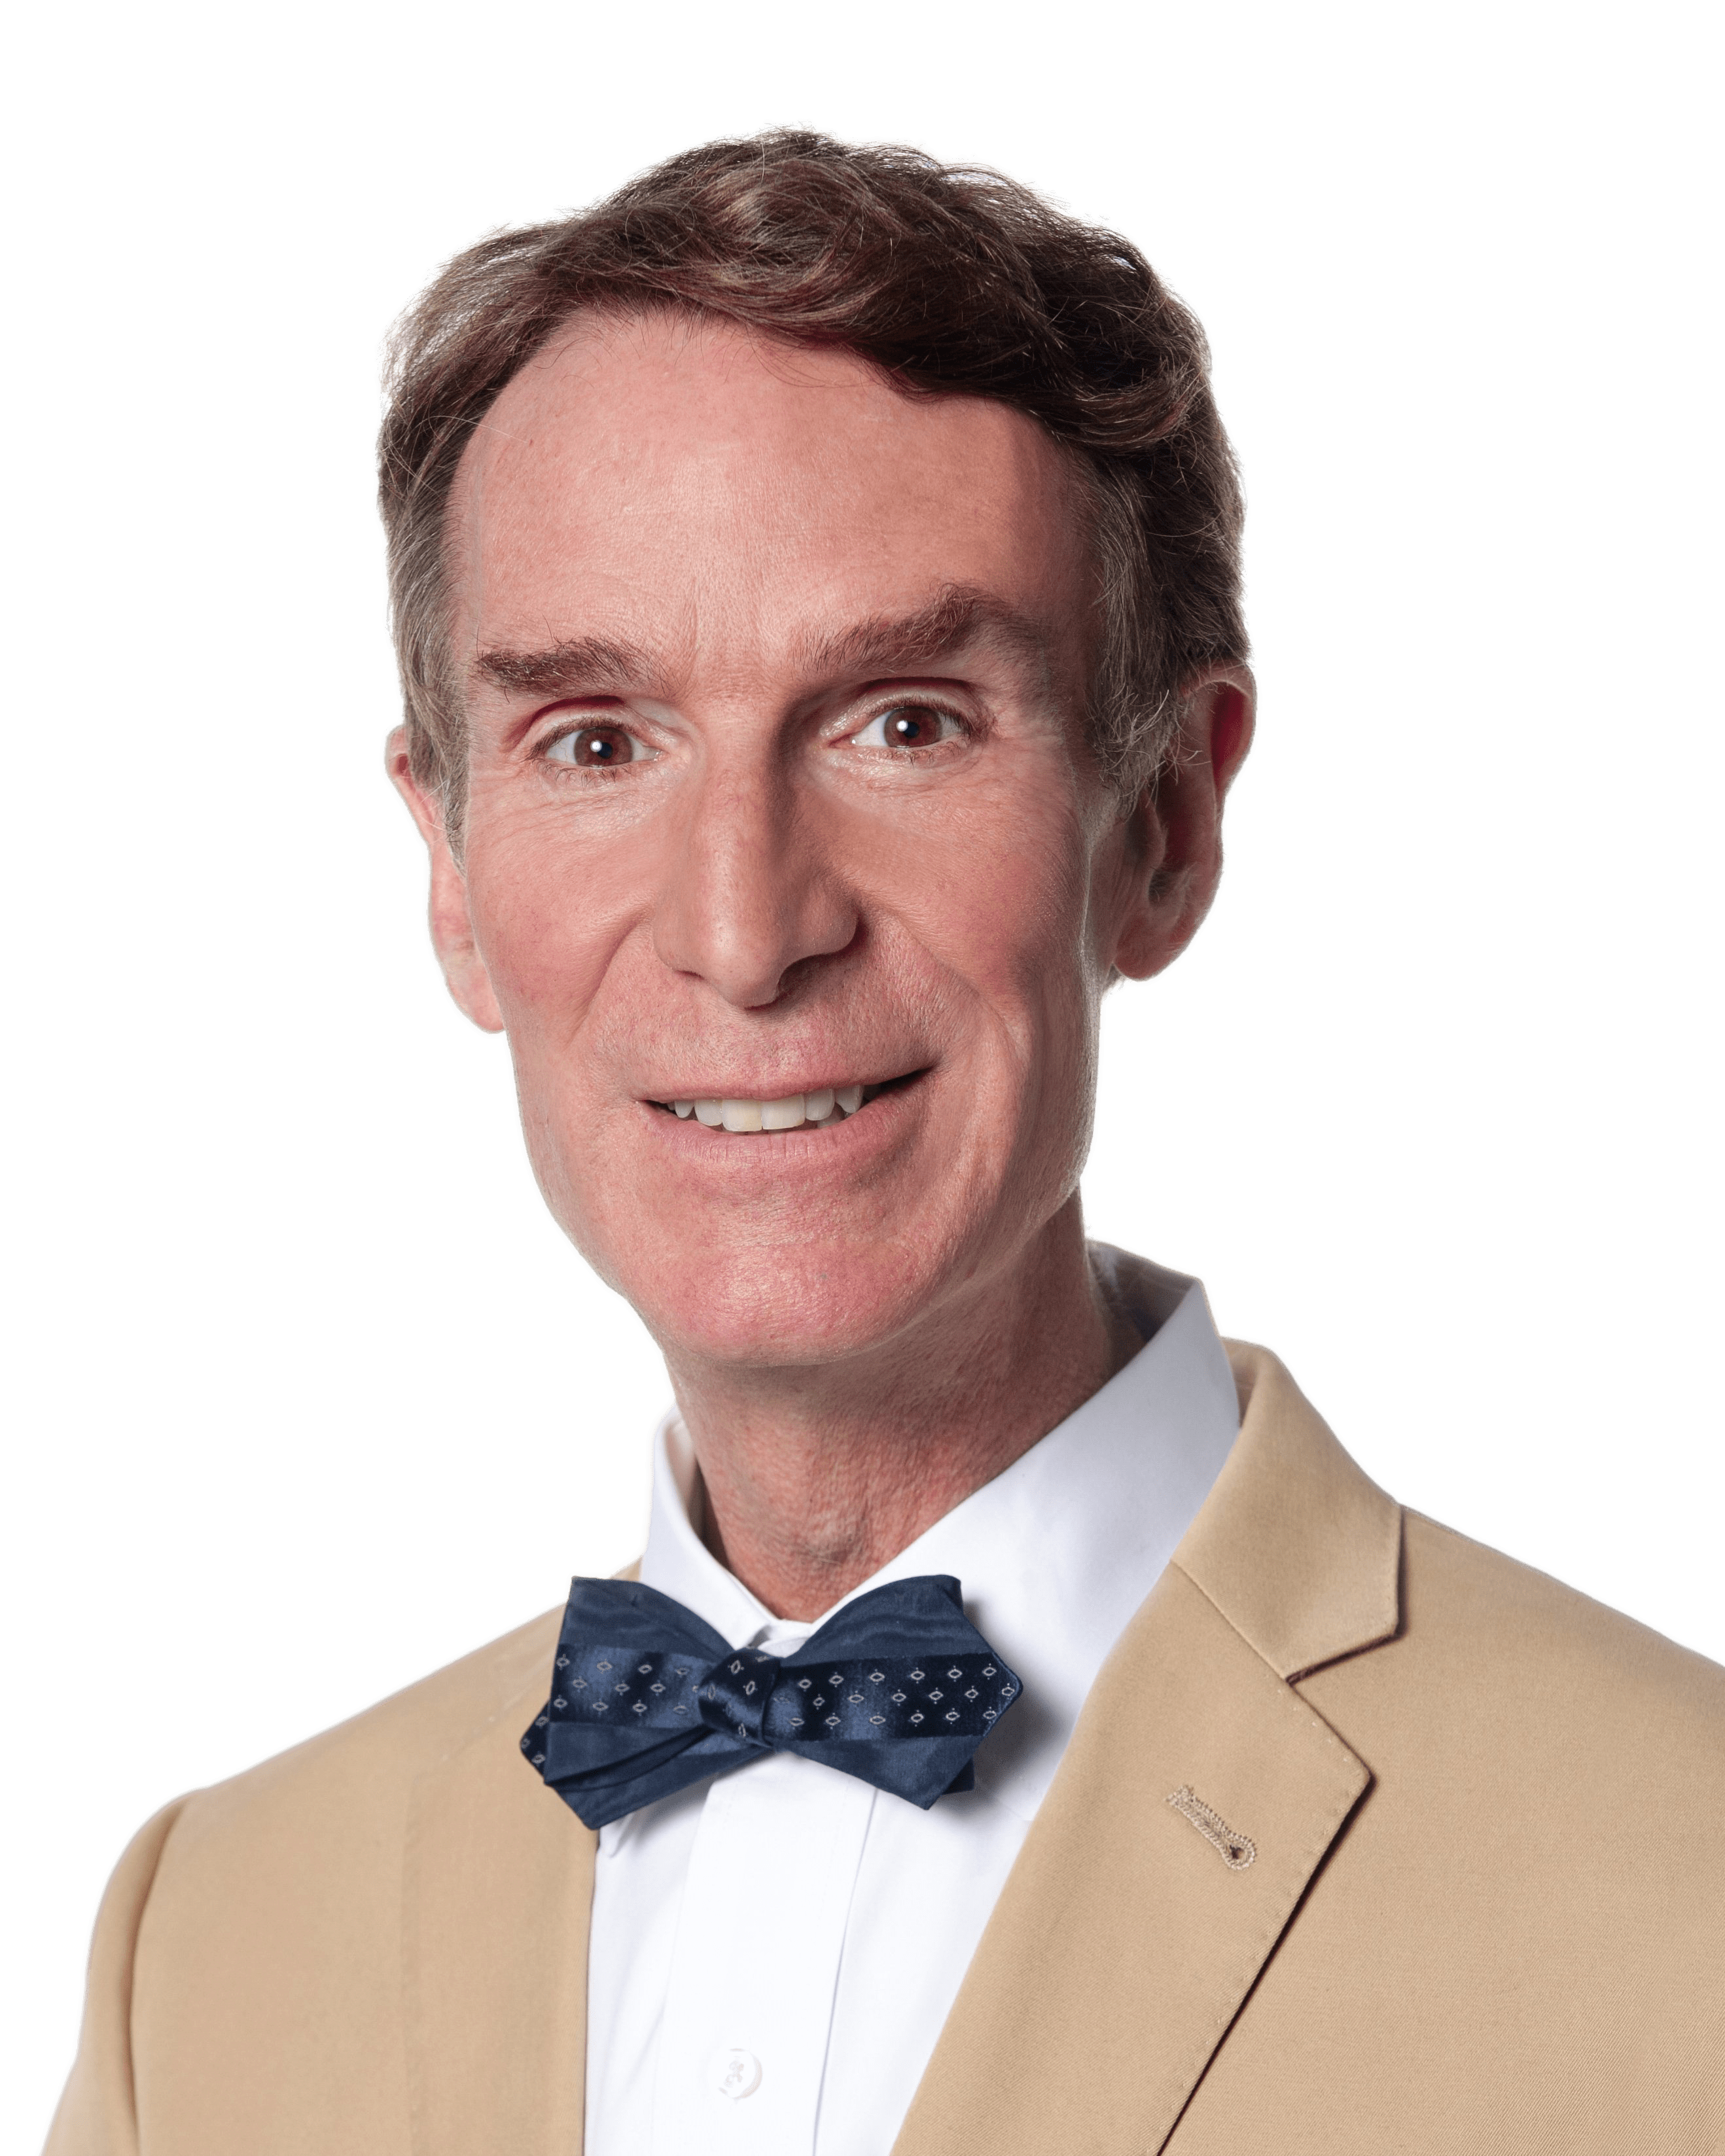 Bill nye the science guy png. Portrait transparent stickpng